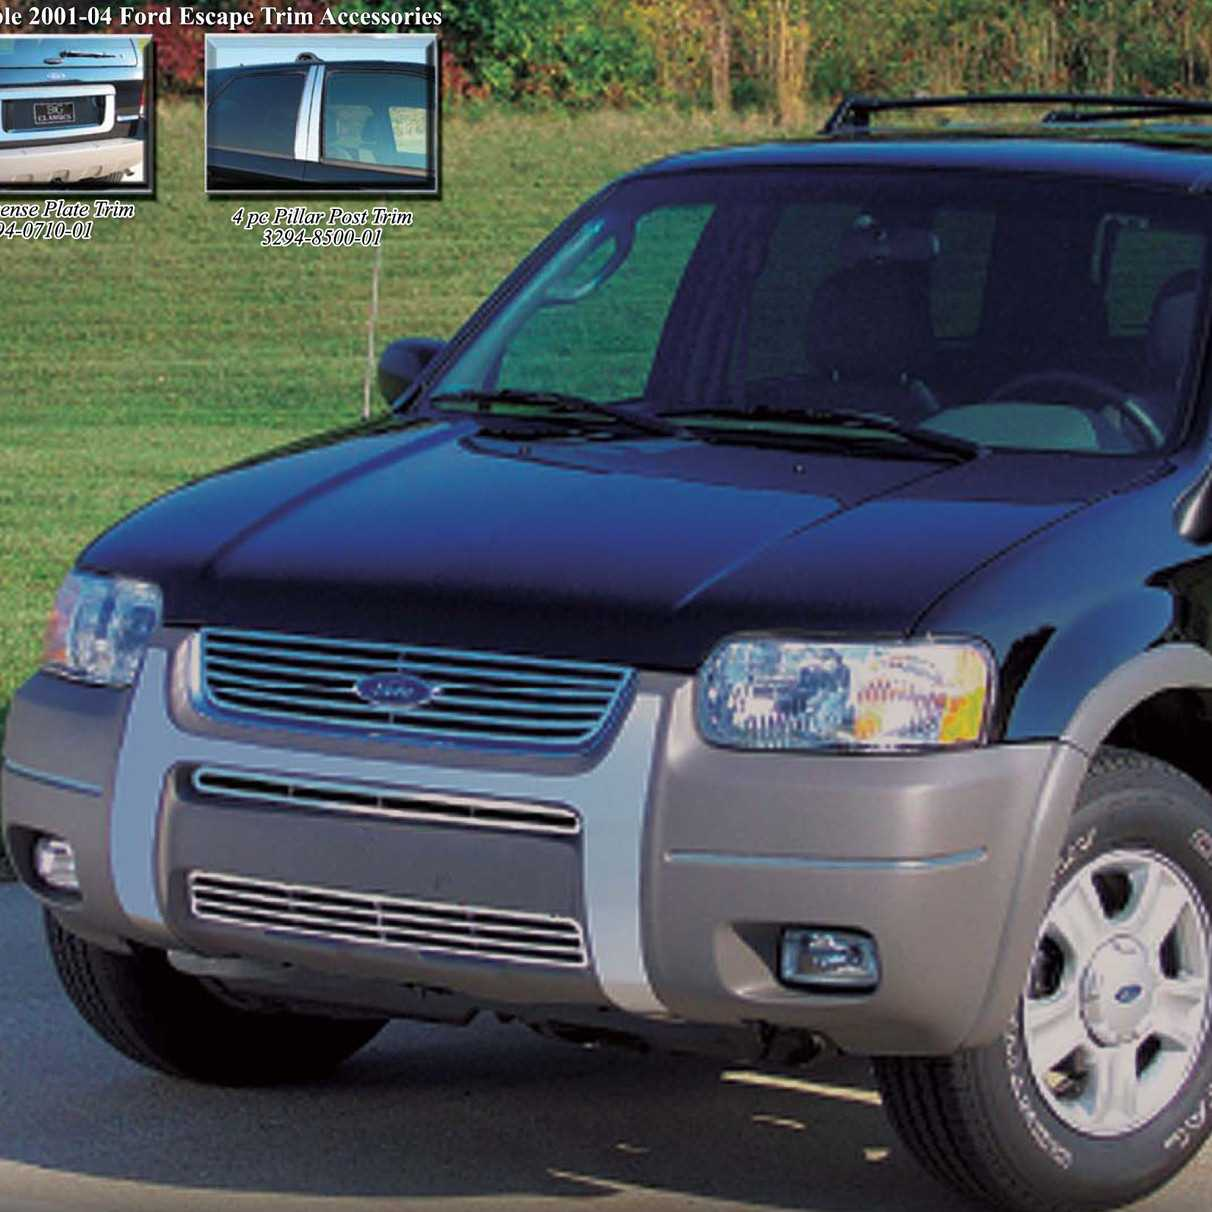 Available finishes product details 2001 2004 ford escape grille